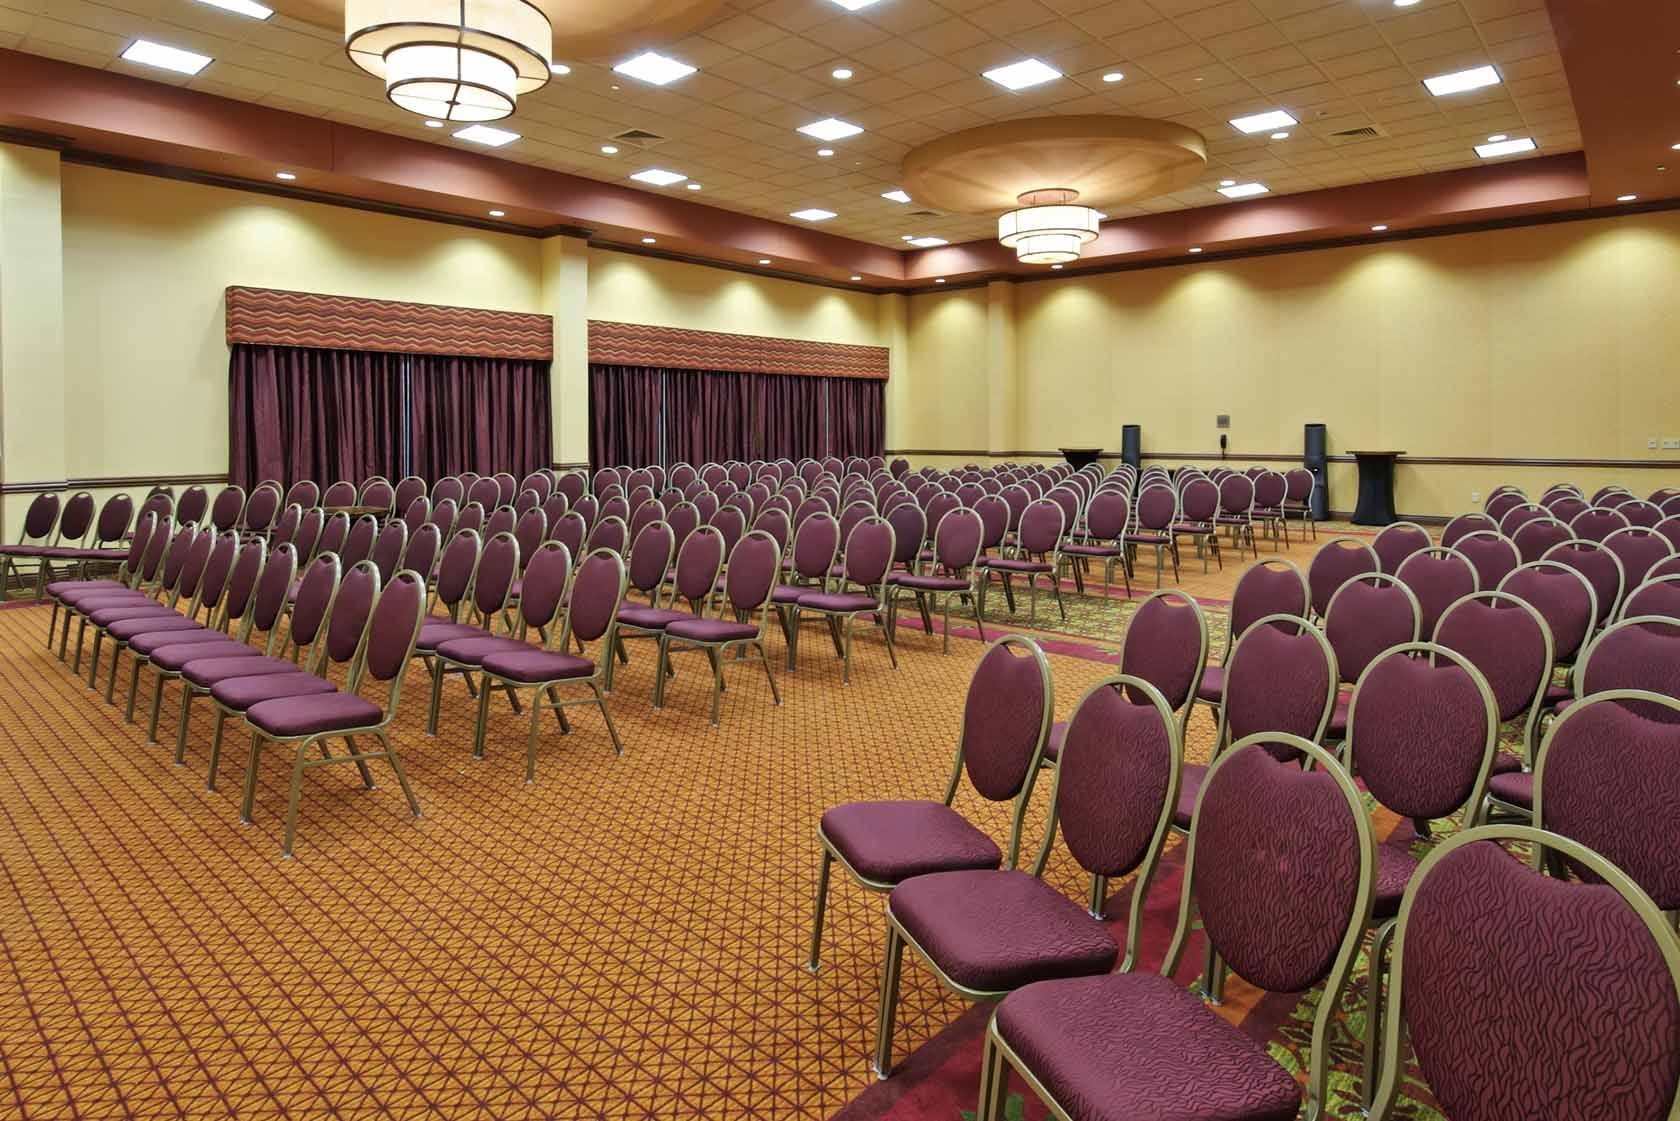 The Gatsby Holds 156 People Seated In Classroom Style 280 In Theatre Reception Style And 150 In Banquet Round Meeting Room Design Conference Room Design Hotel